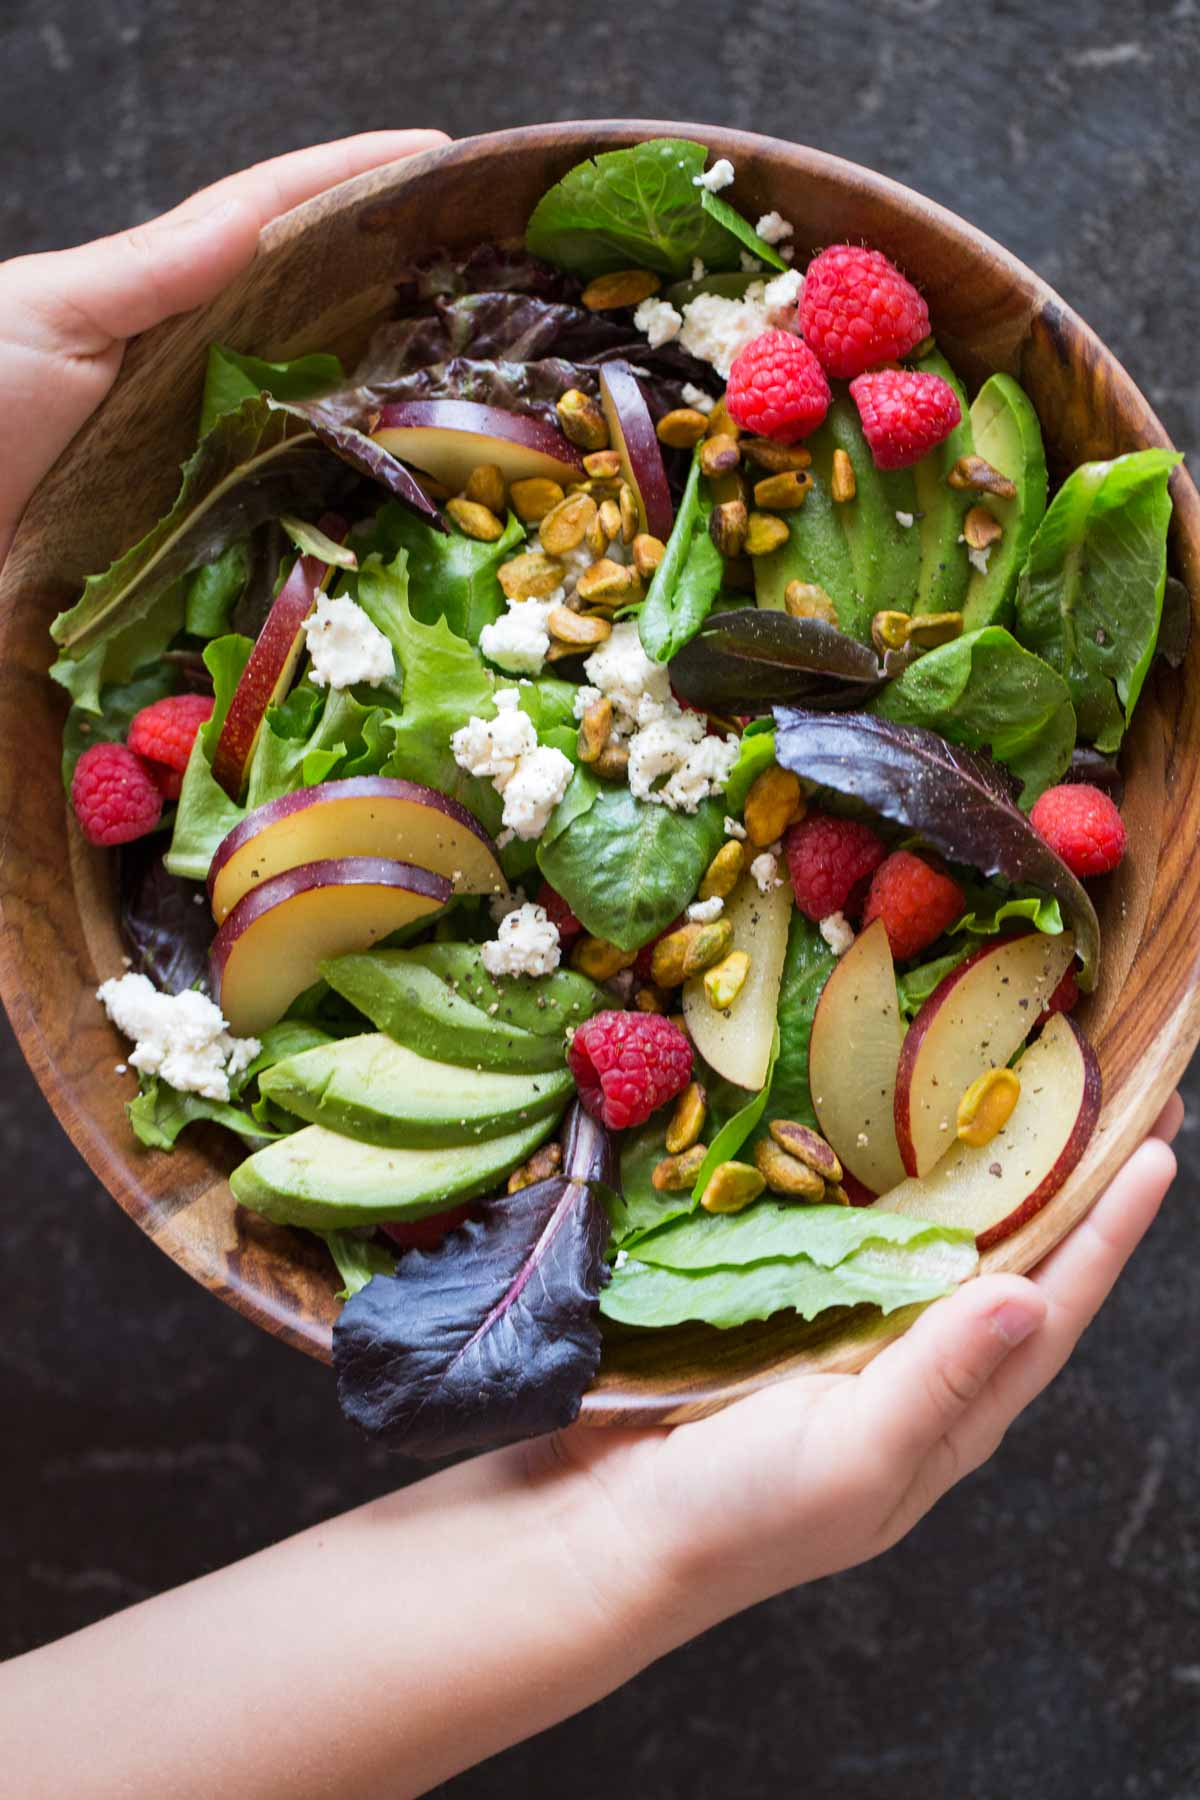 Summer Fruited Salad with Goat Cheese and Pistachios in a wood bowl.